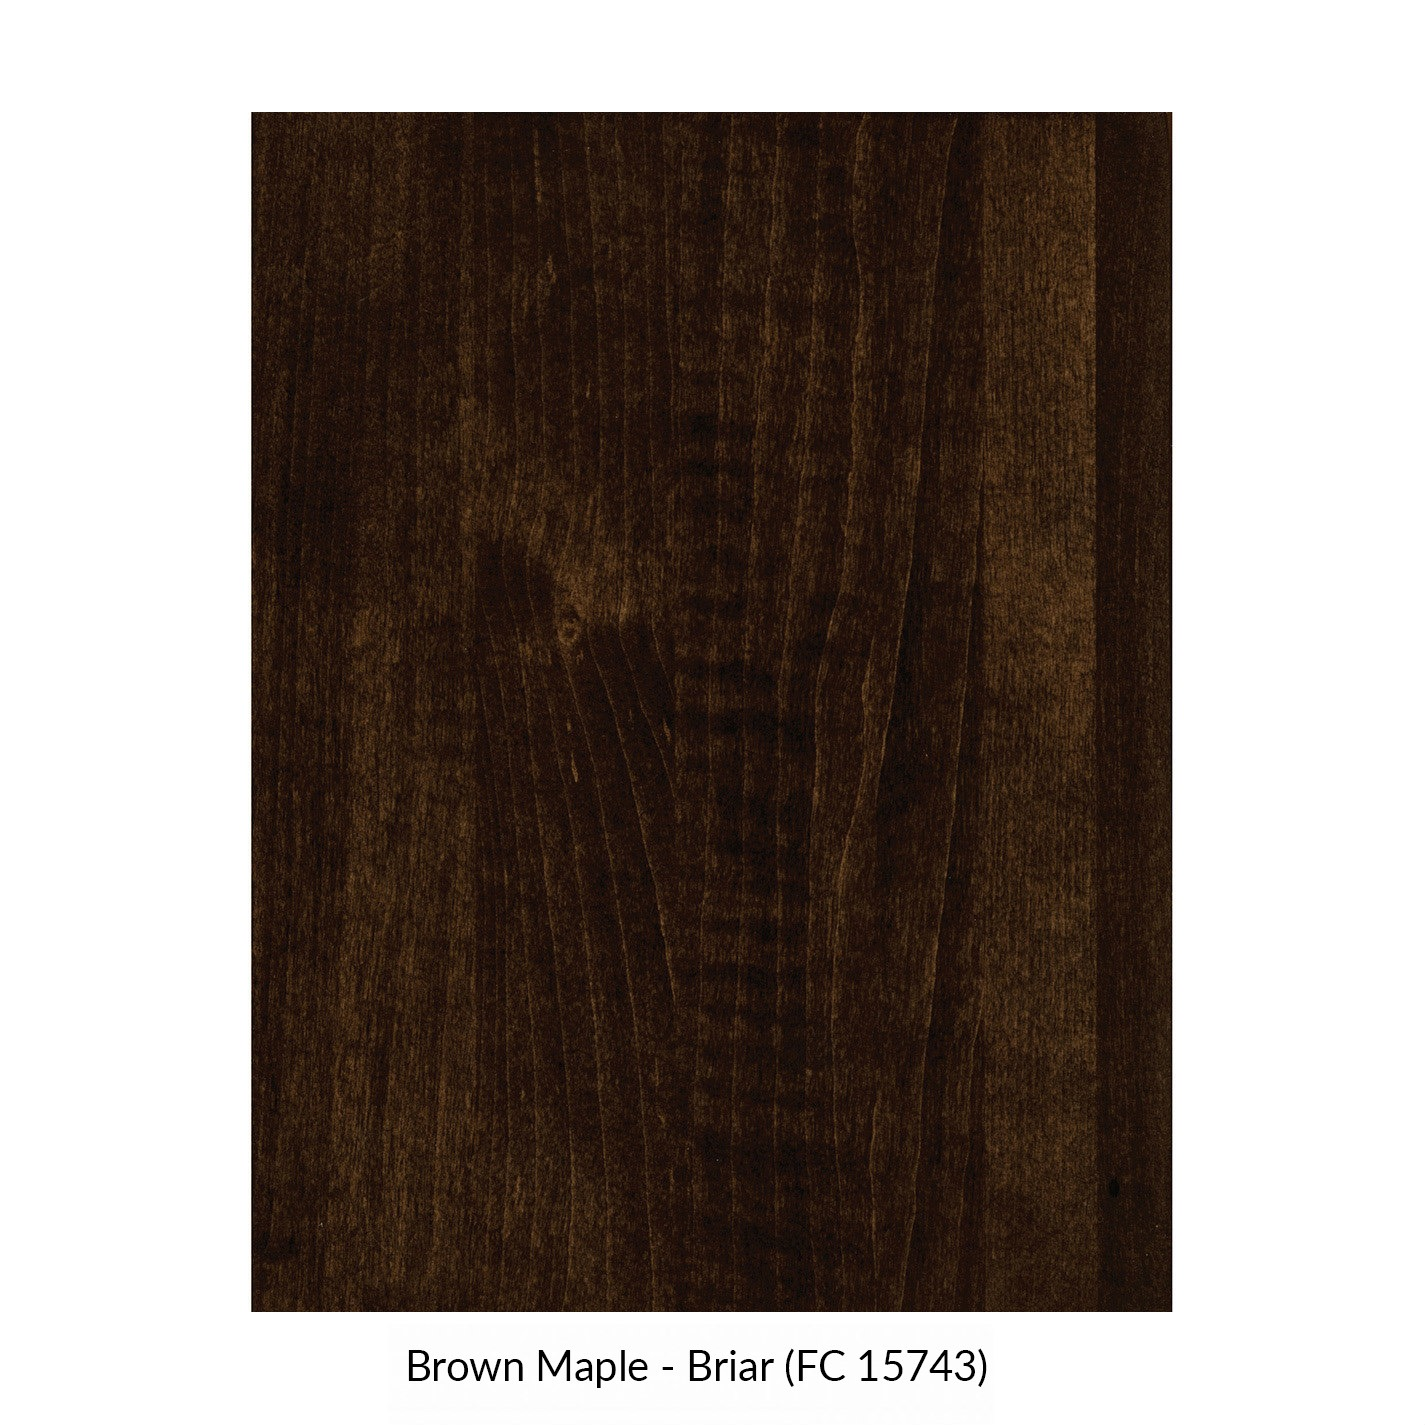 spectrum-brown-maple-briar-fc-15743.jpg